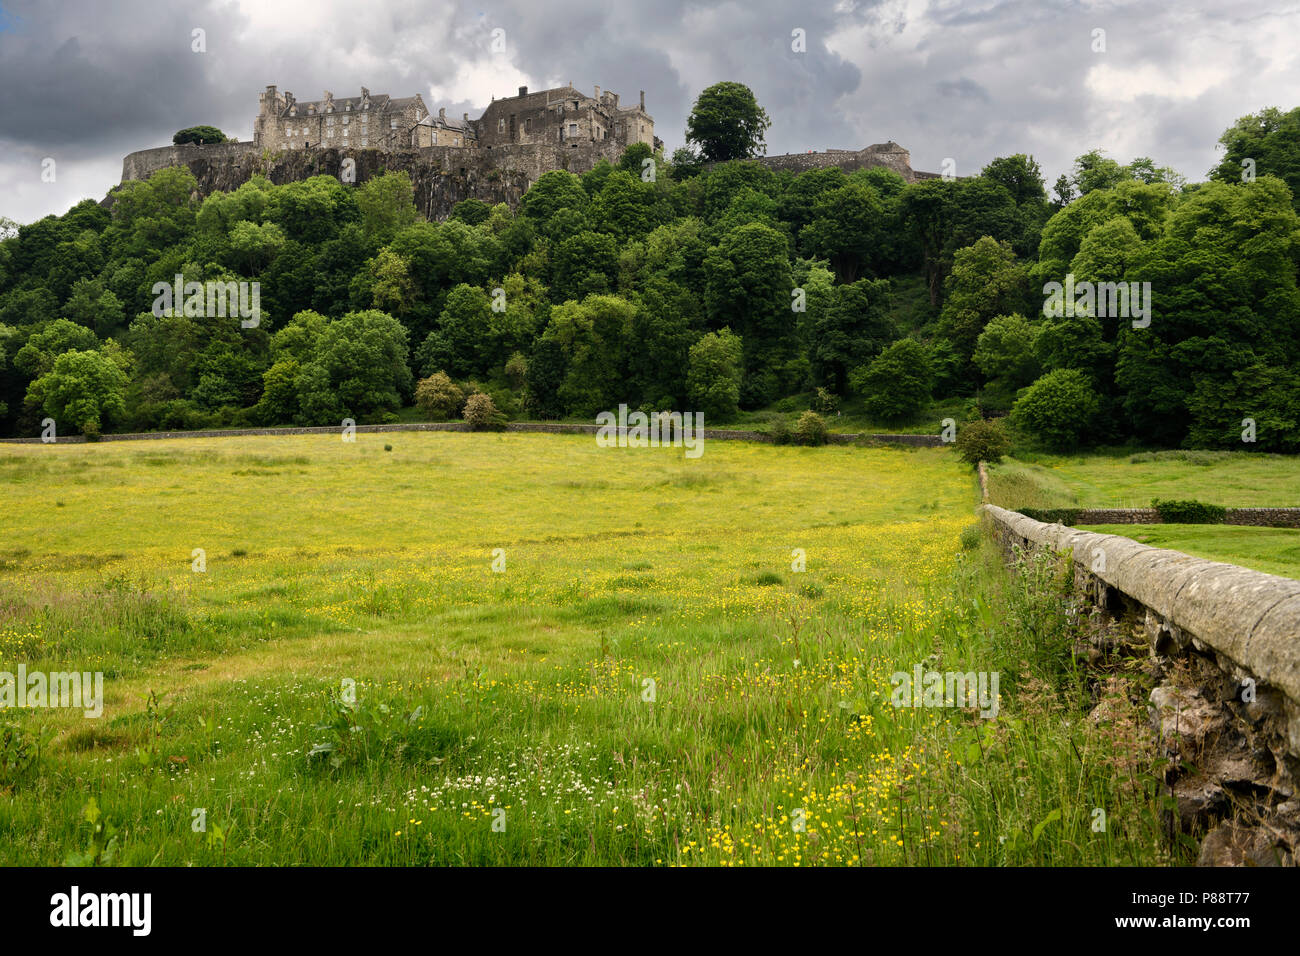 Stirling Castle high on Castle Hill with clouds and yellow buttercups in sheep pasture with stone wall in Stirling Scotland UK - Stock Image